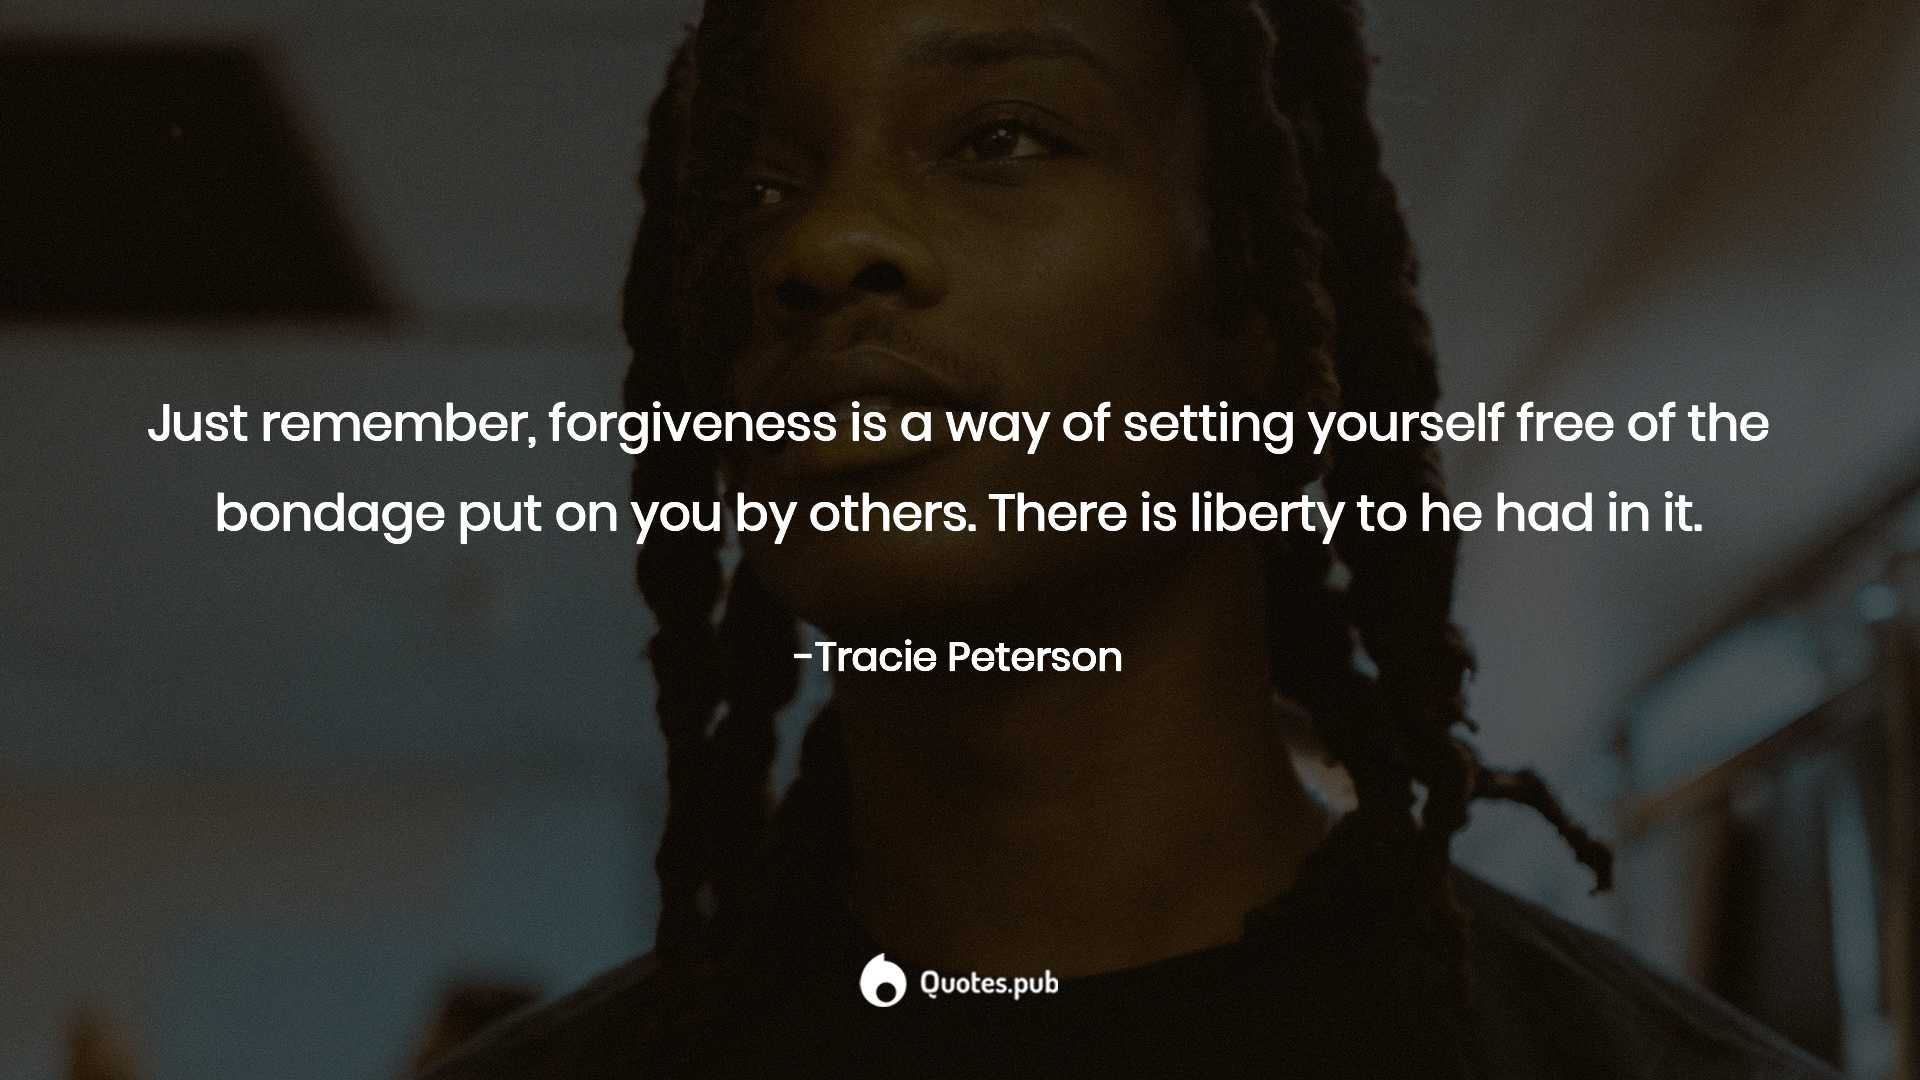 Just Remember Forgiveness Is A Way Tracie Peterson Quotes Pub